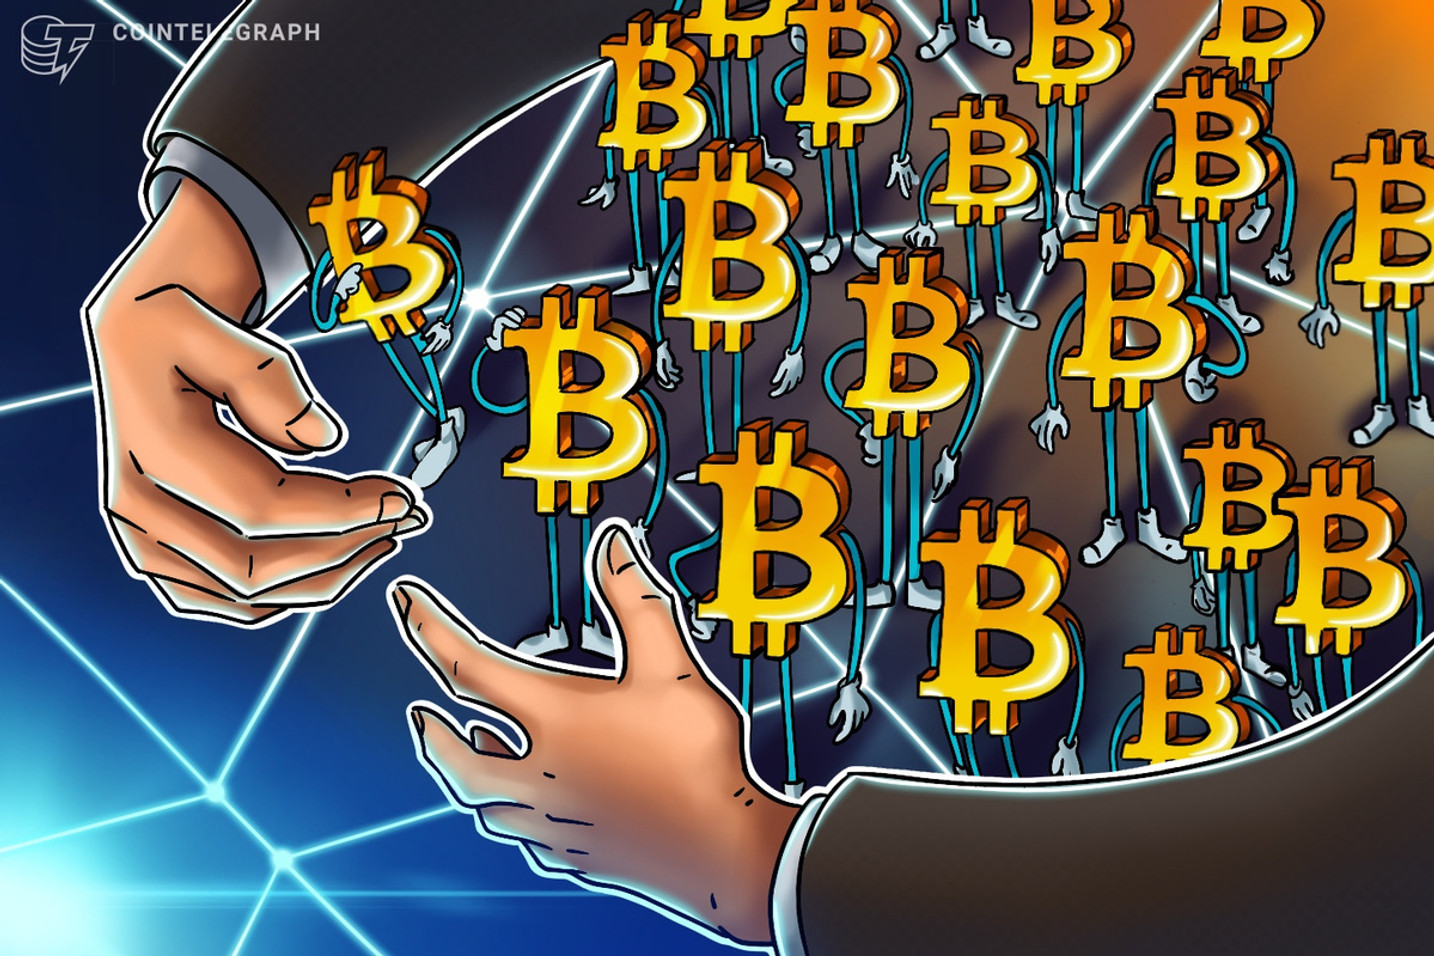 VanEck Report Illustrates Why Institutions Should Hold Bitcoin